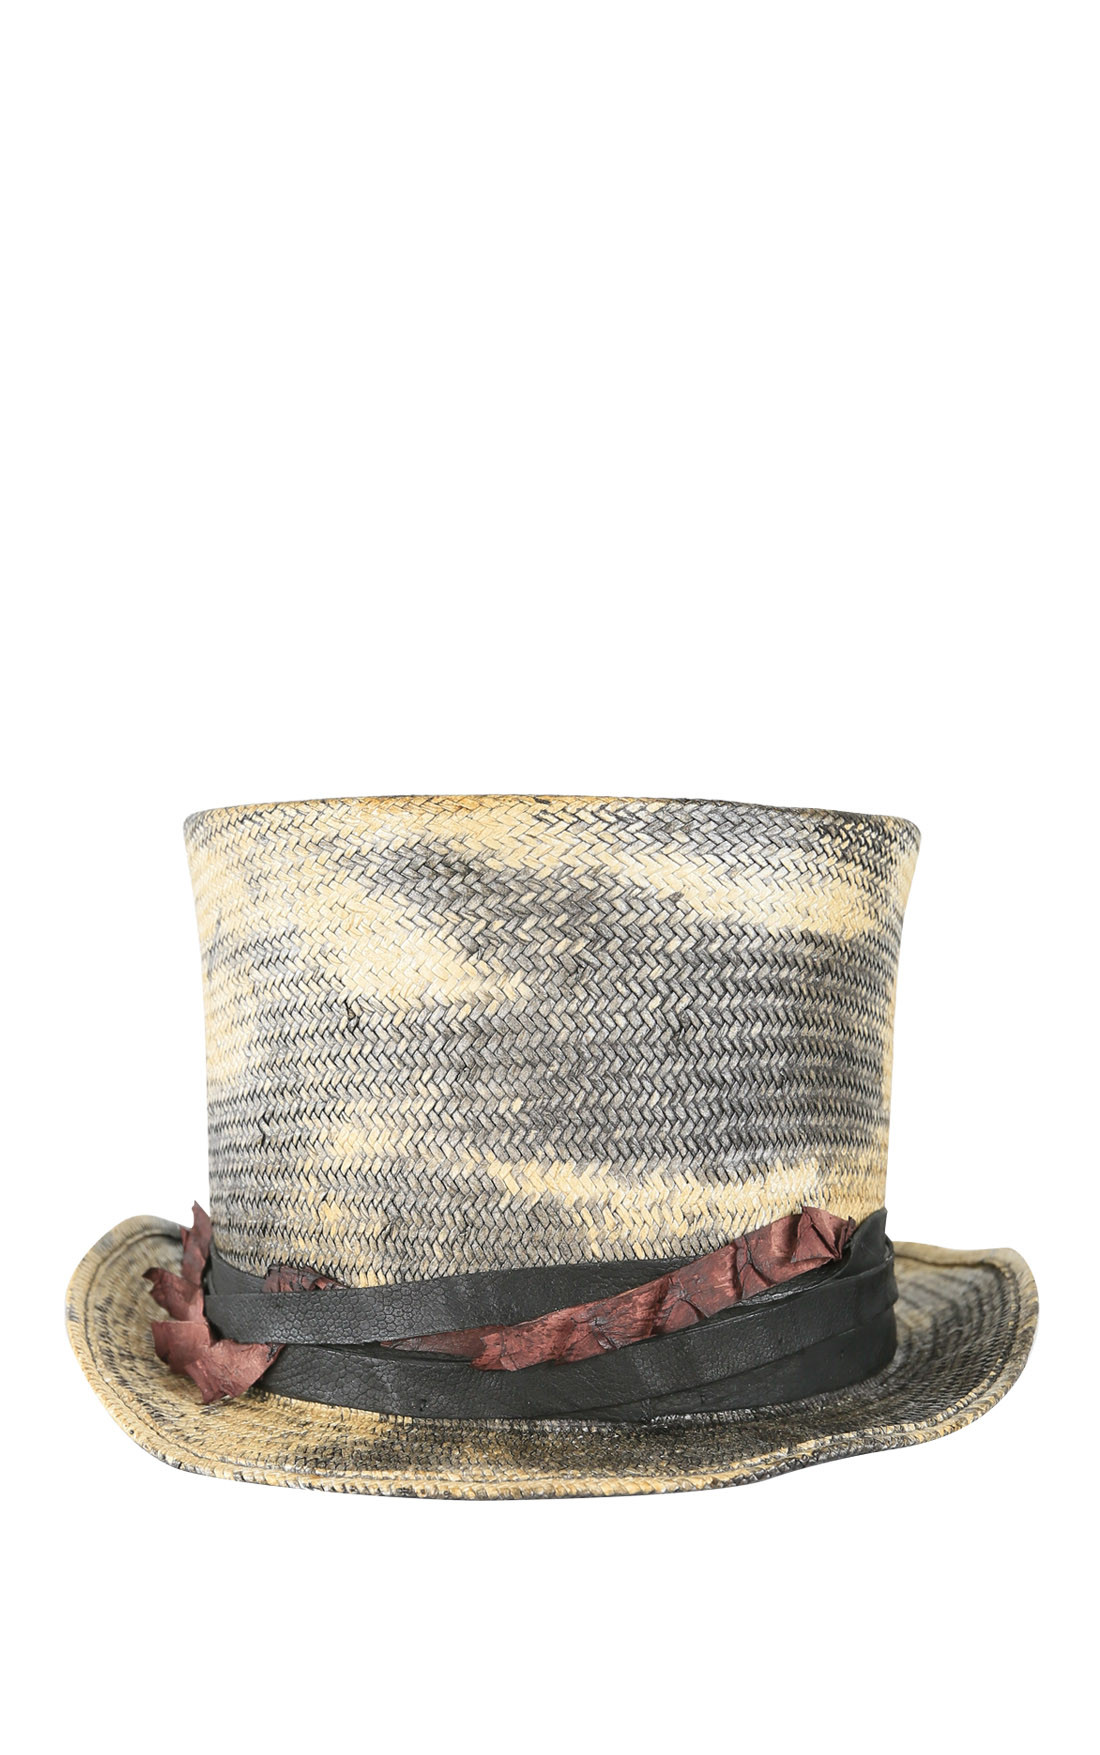 MOVE - Vintage Effect Woven Straw Top Hat (33)